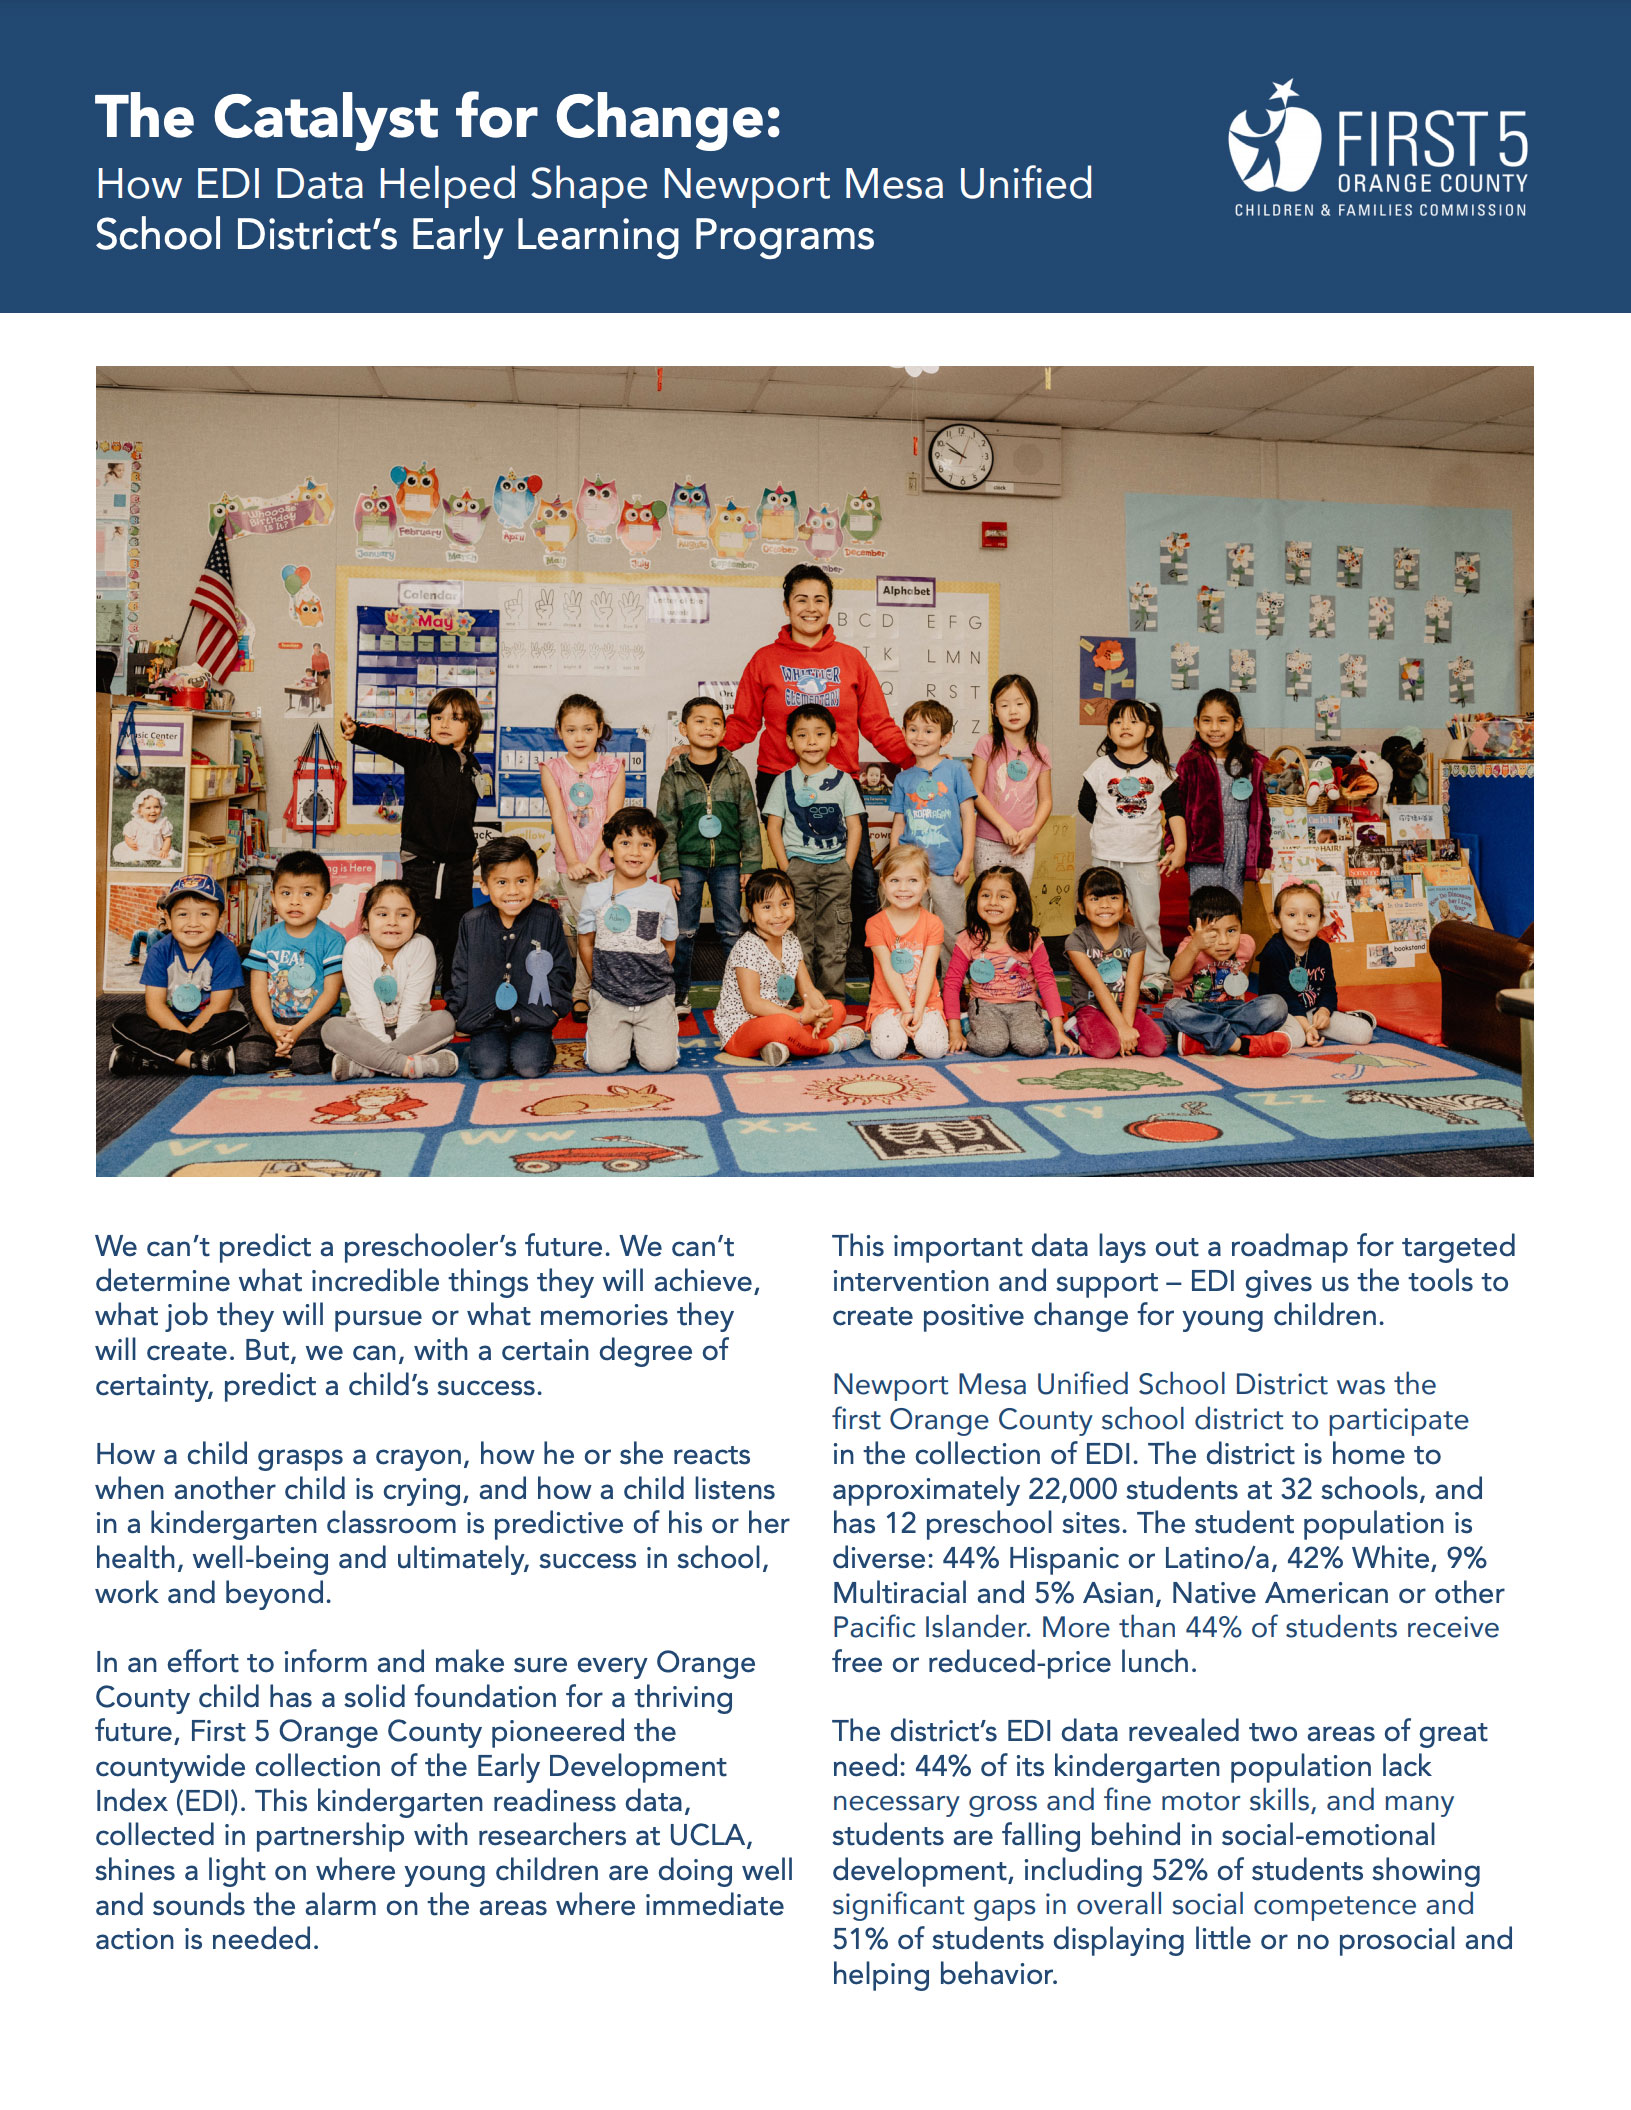 The Catalyst for Change: How EDI data helped Newport Mesa Unified School District